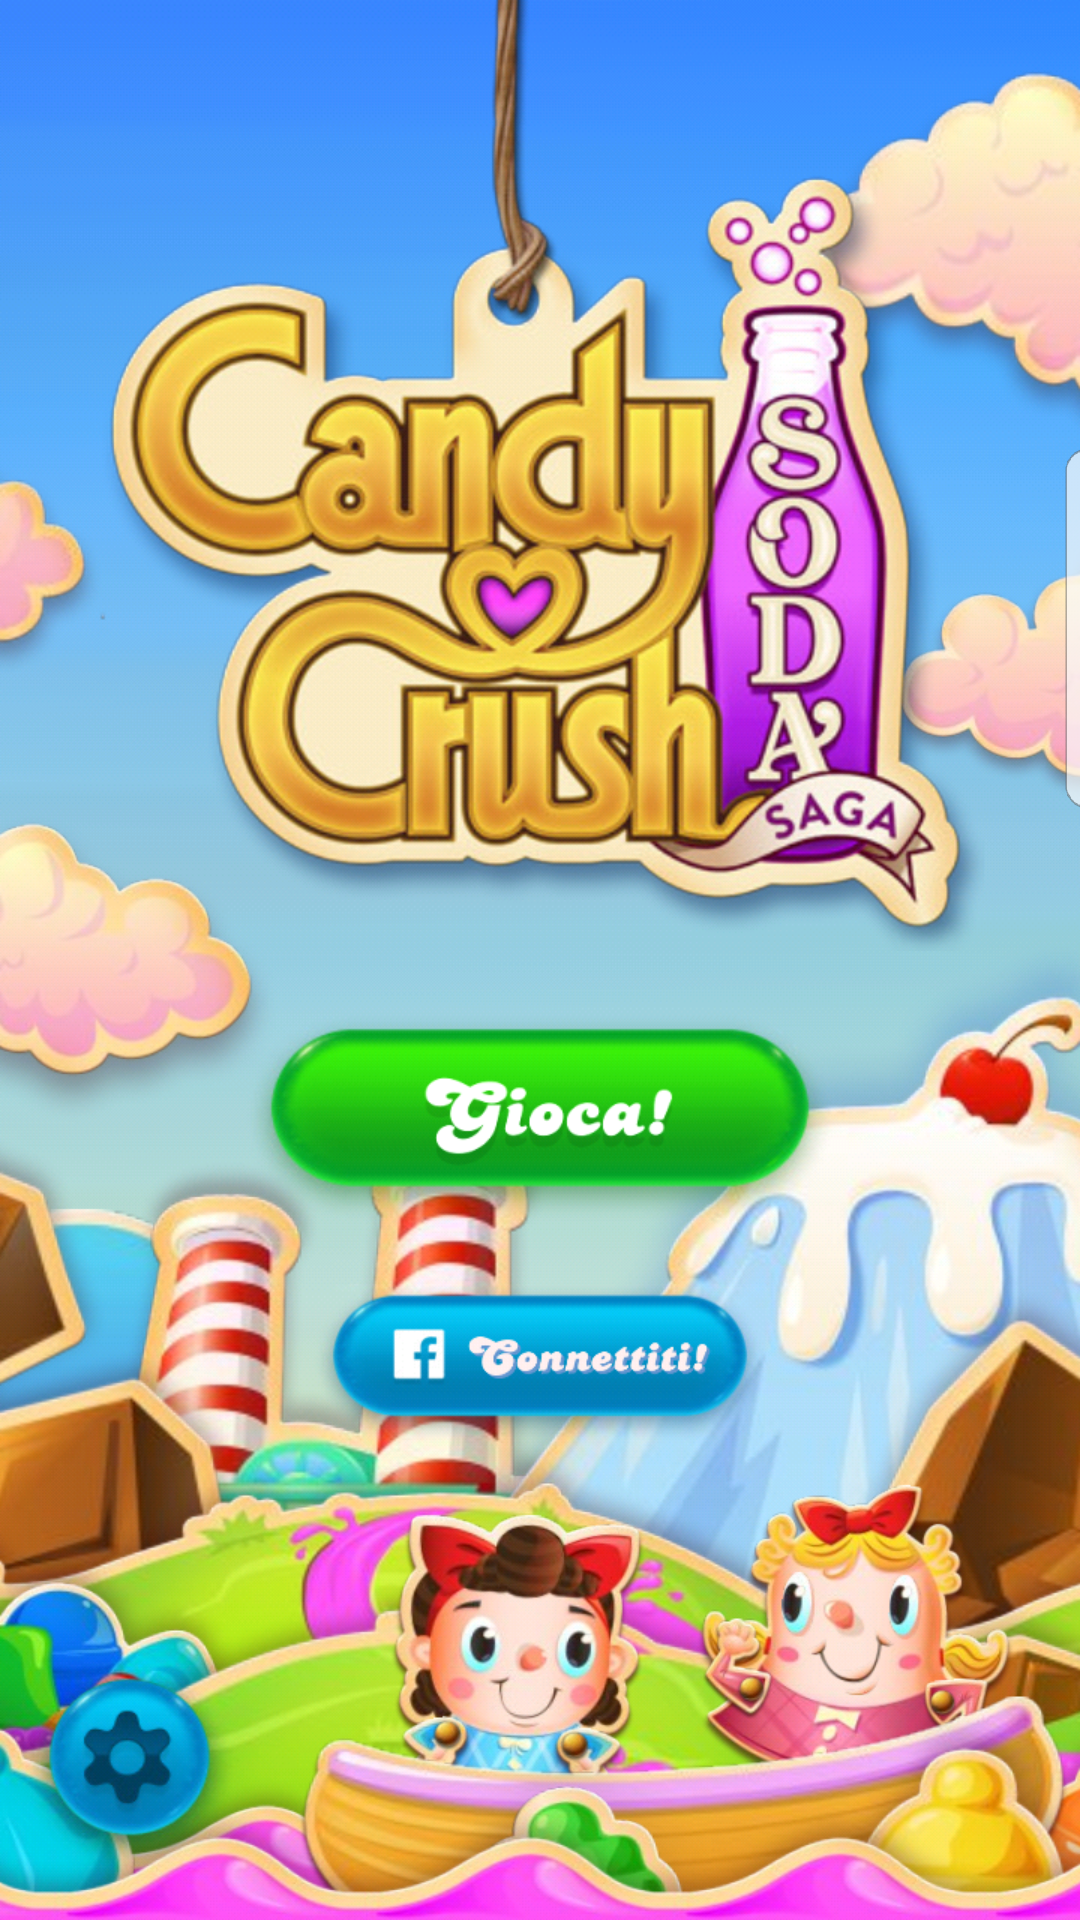 candy crush soda mod apk unlimited moves